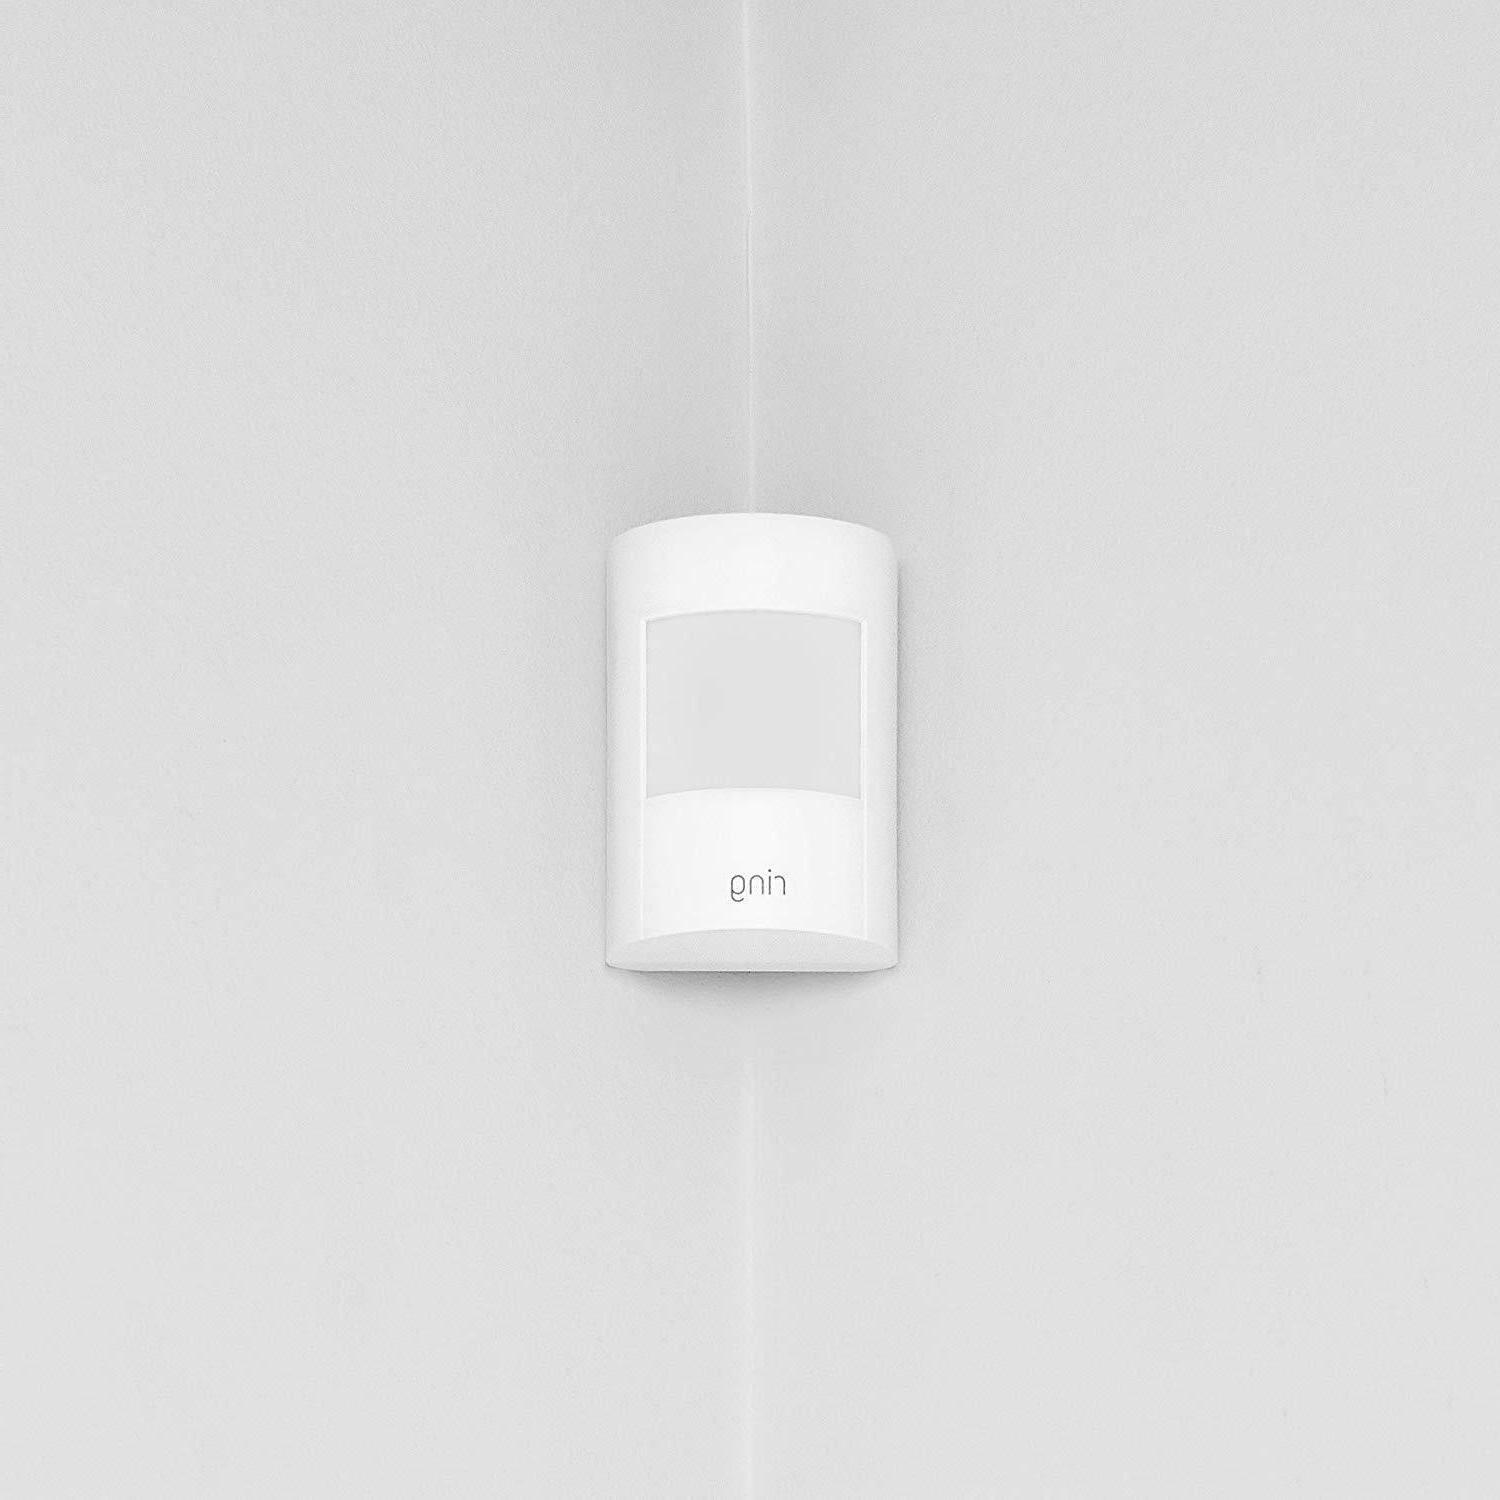 Ring Alarm Home Security + Works